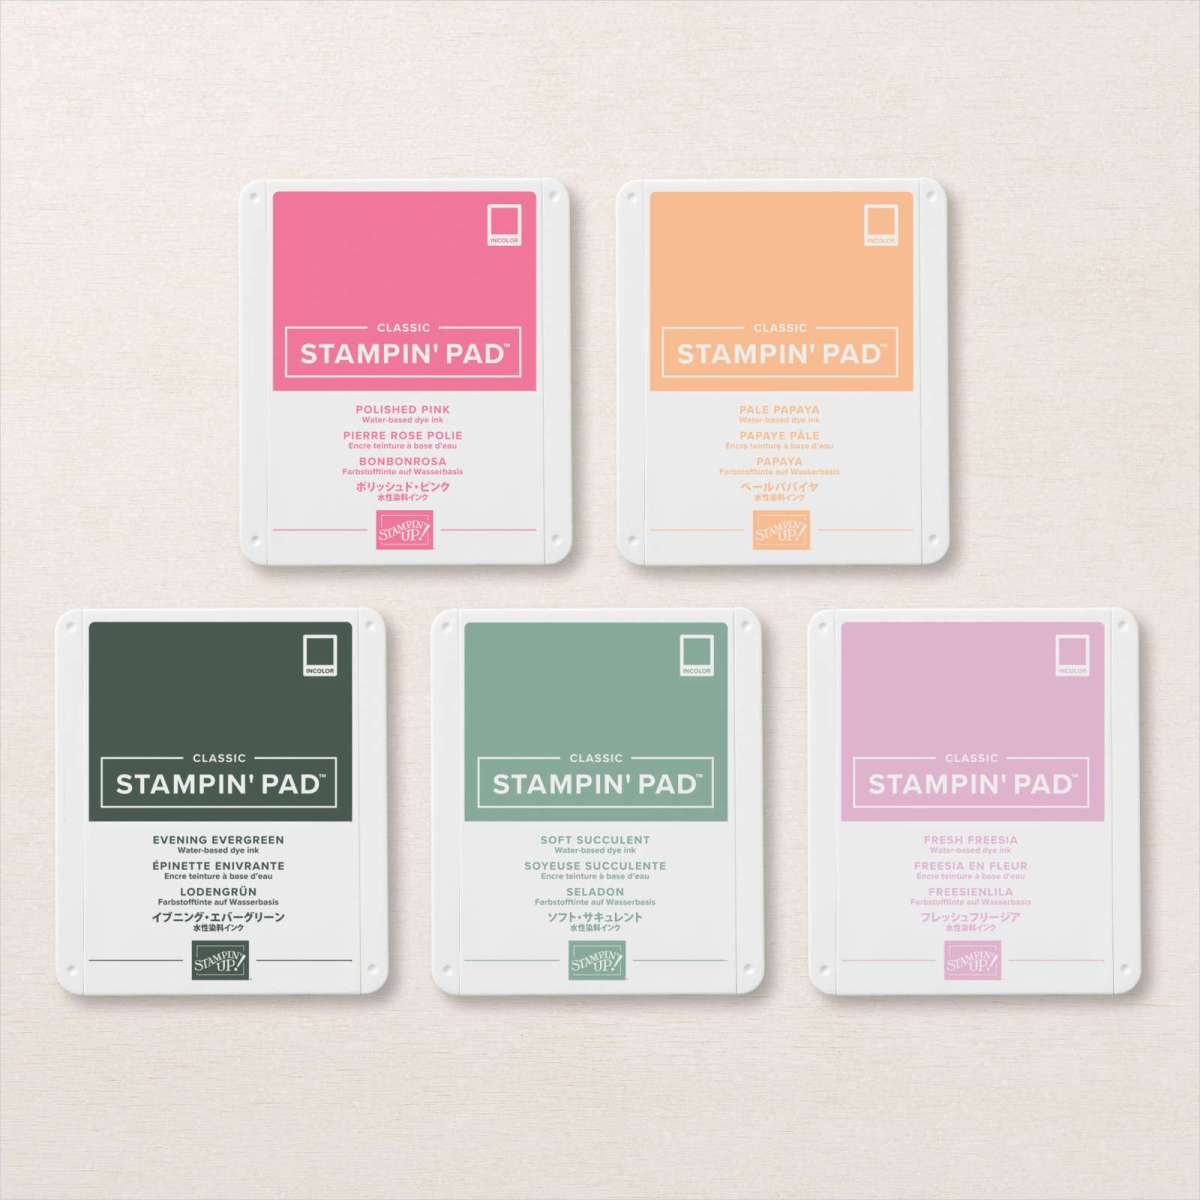 ASSORTIMENT DE TAMPONS ENCREURS CLASSIC IN COLOR 2021-2023